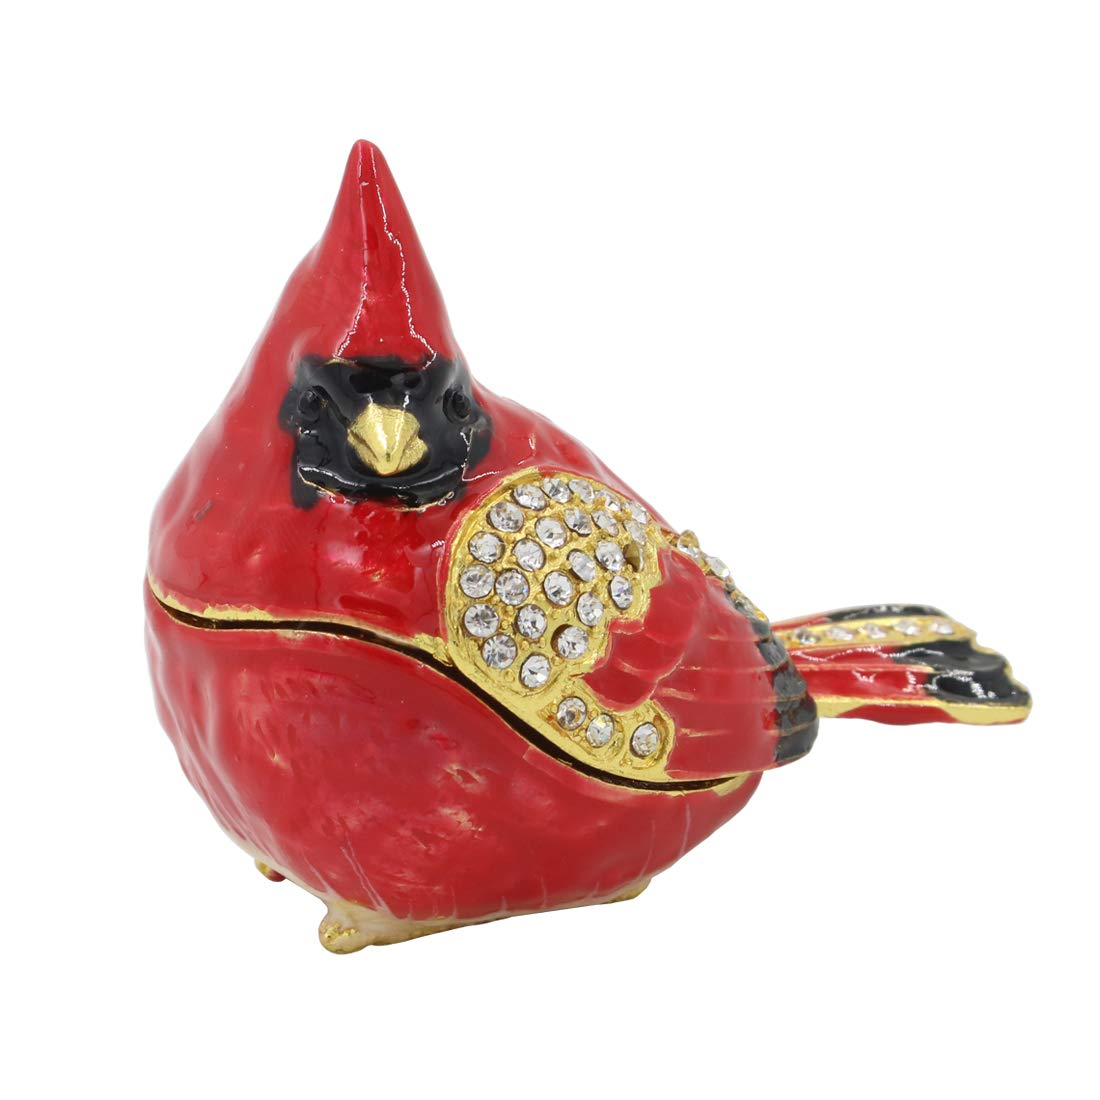 MICG Bird Trinket Box Spoontiques Cardinal Metal Enameled Animal Figurine Collectable Wedding Jewelry Ring Holder Organizer (Red)